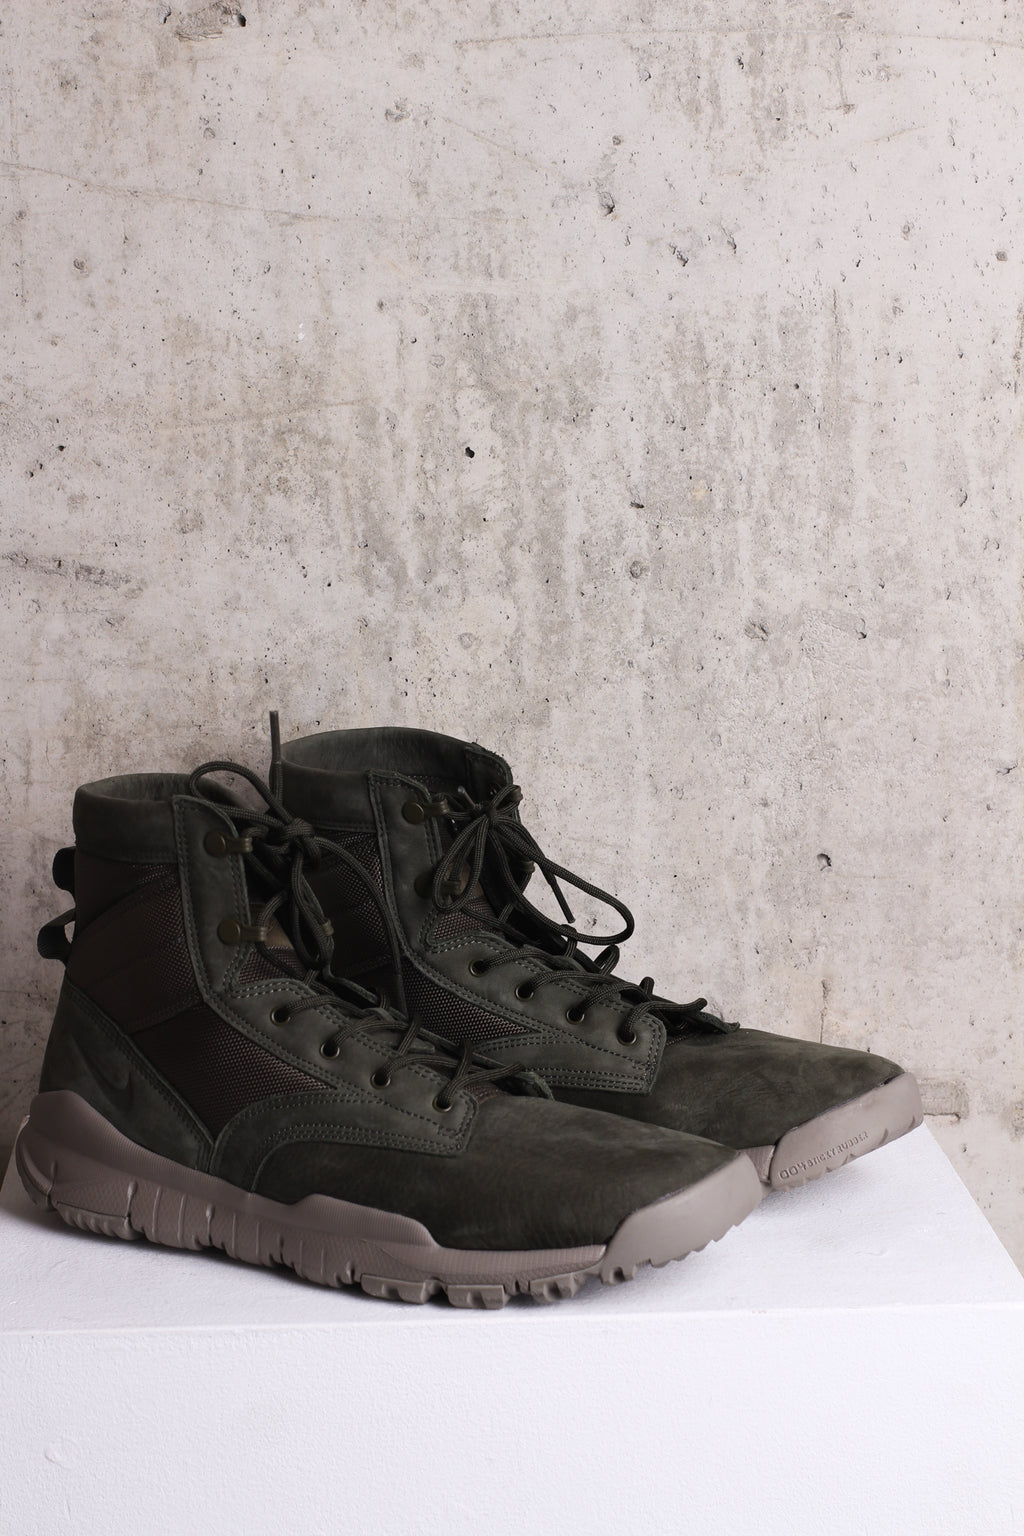 Nike SFB 6´ NSW Leather Boot - UK 11 , EU 46